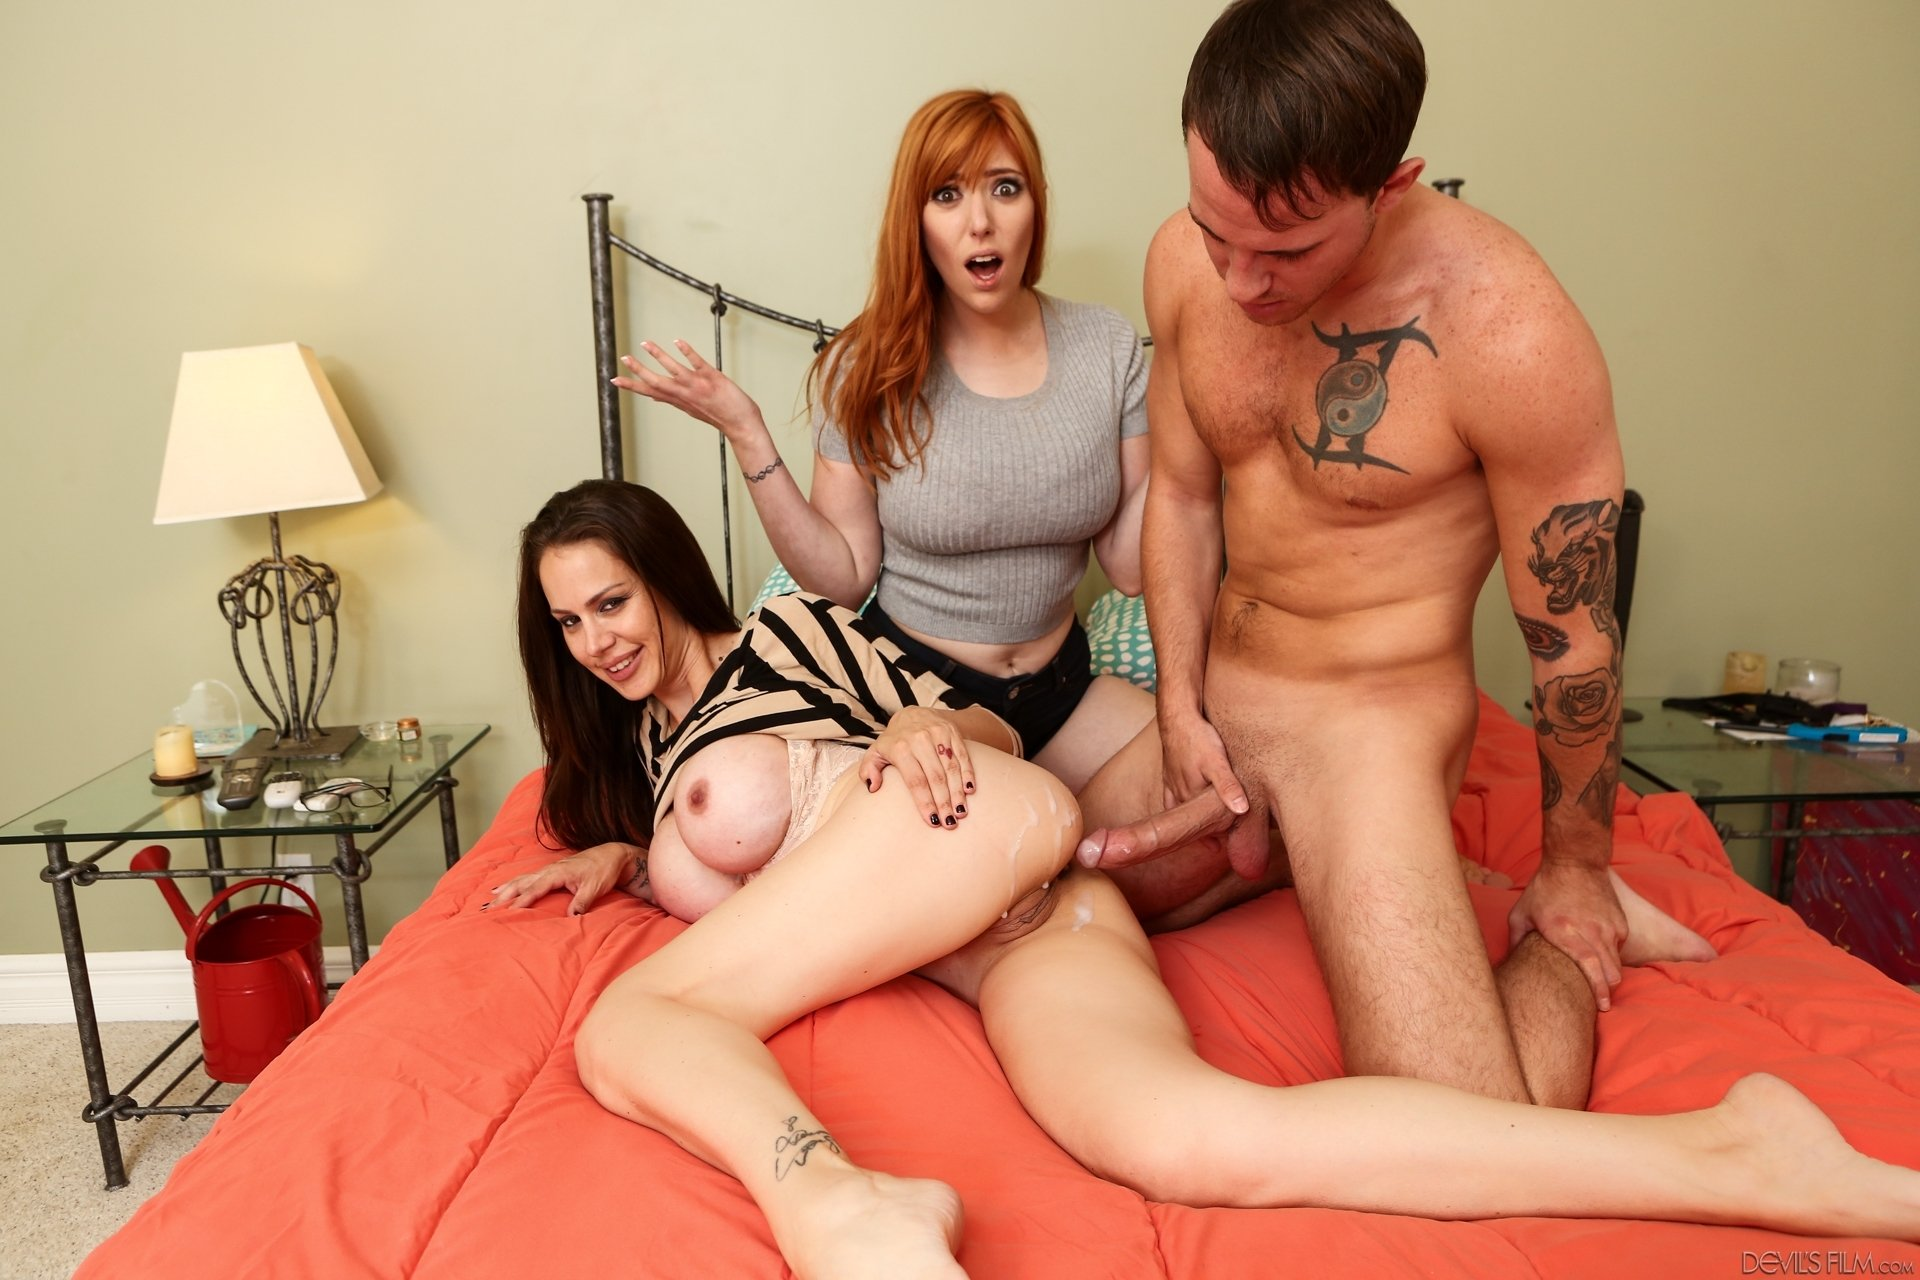 Brazzers hard anal sex #1